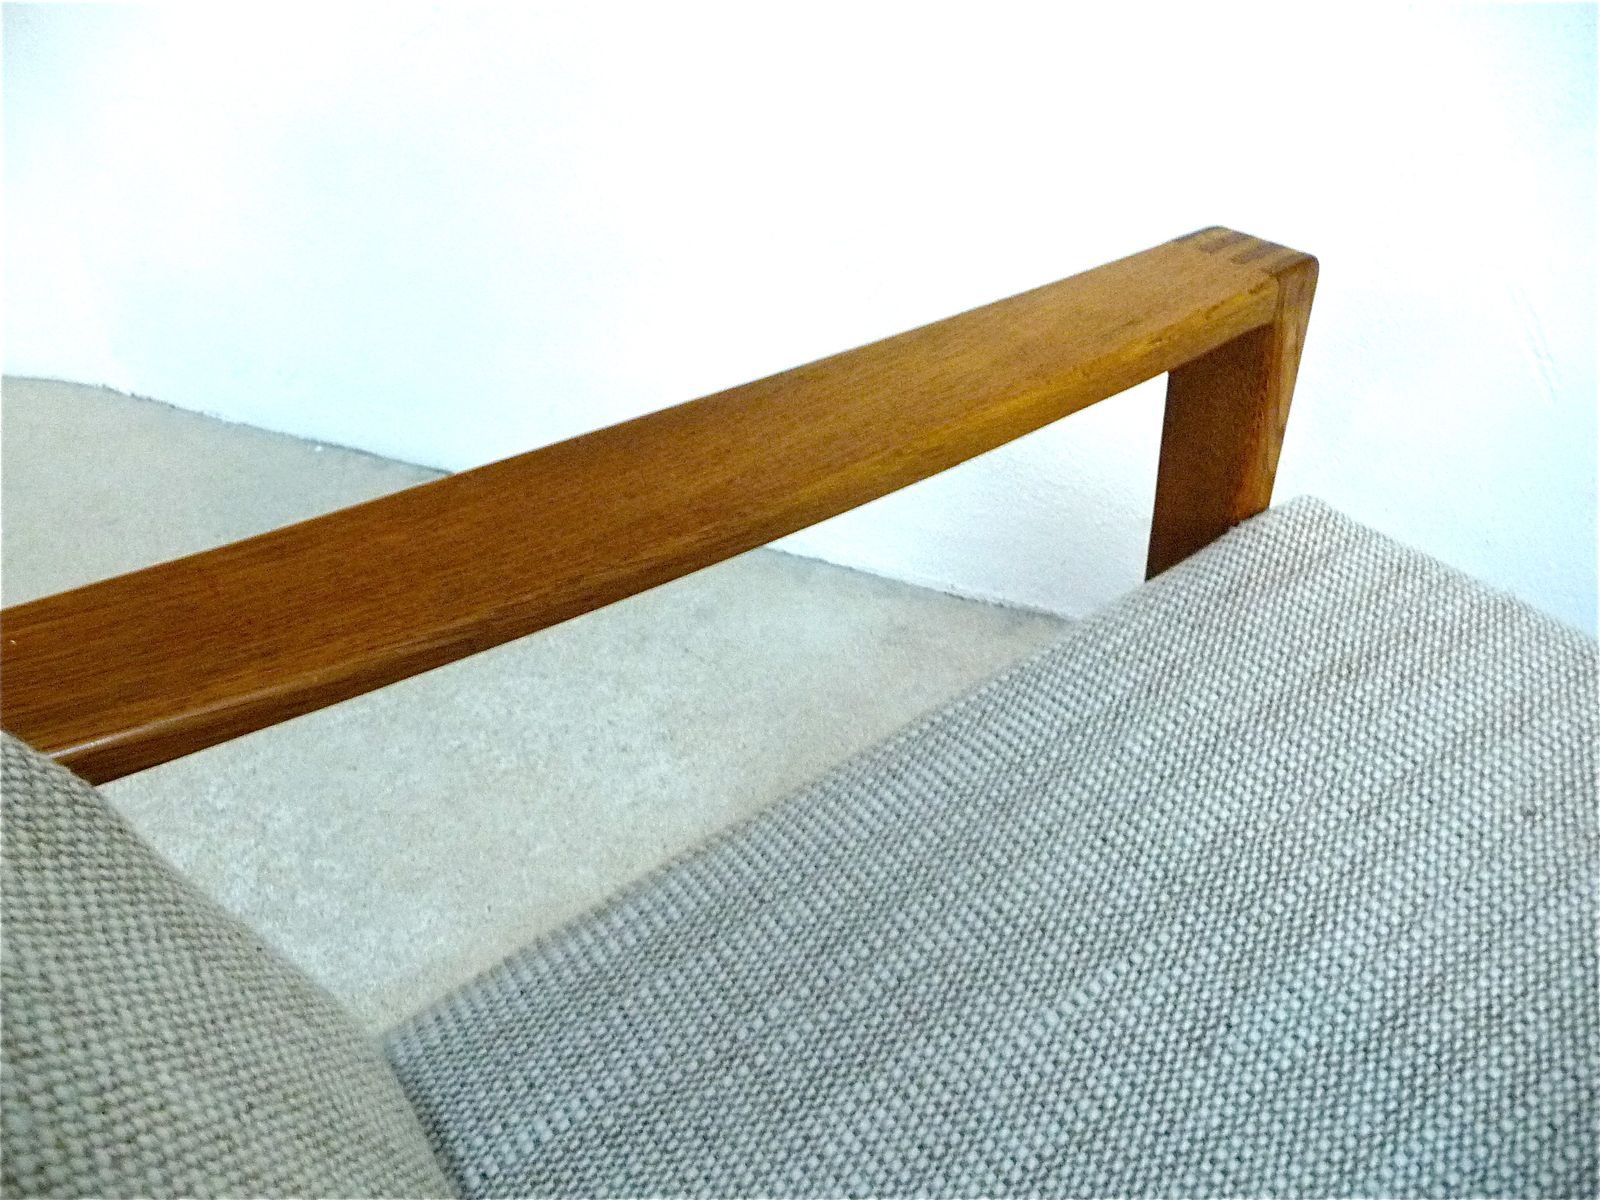 Midcentury 3 seater sofa from wk wohnen for sale at pamono